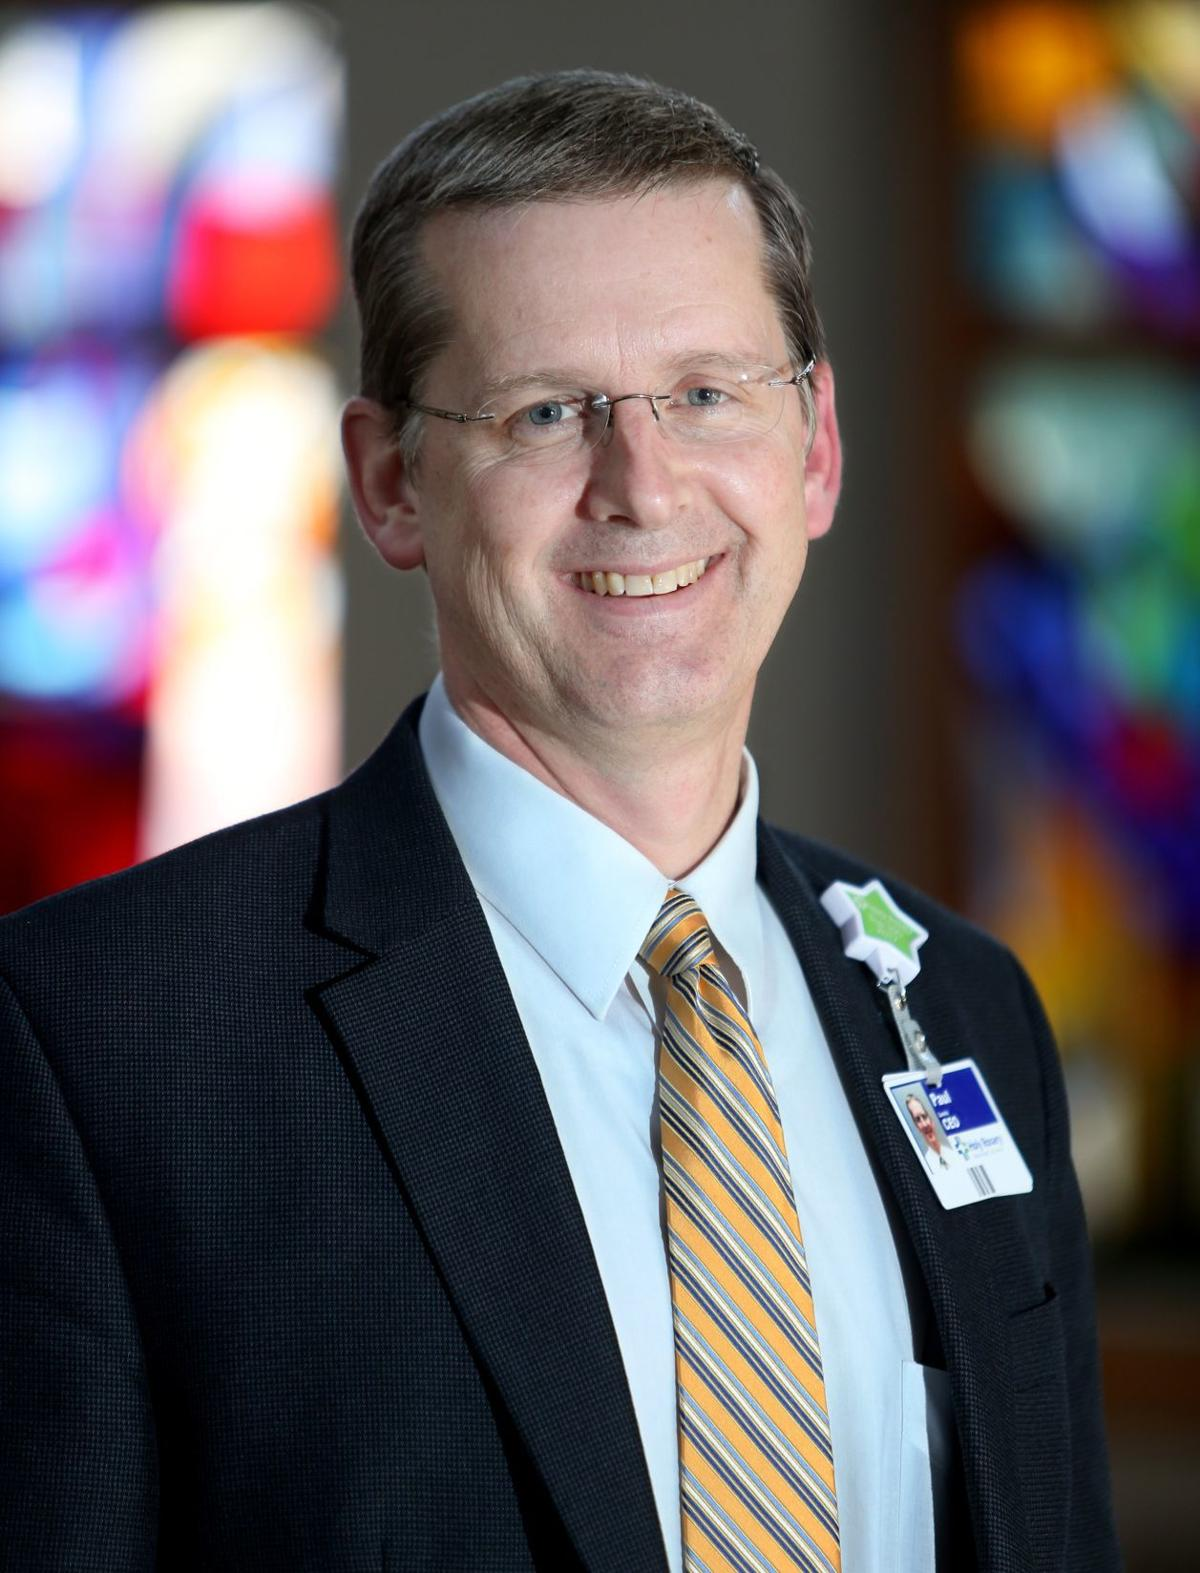 Holy Rosary Healthcare President Paul Lewis